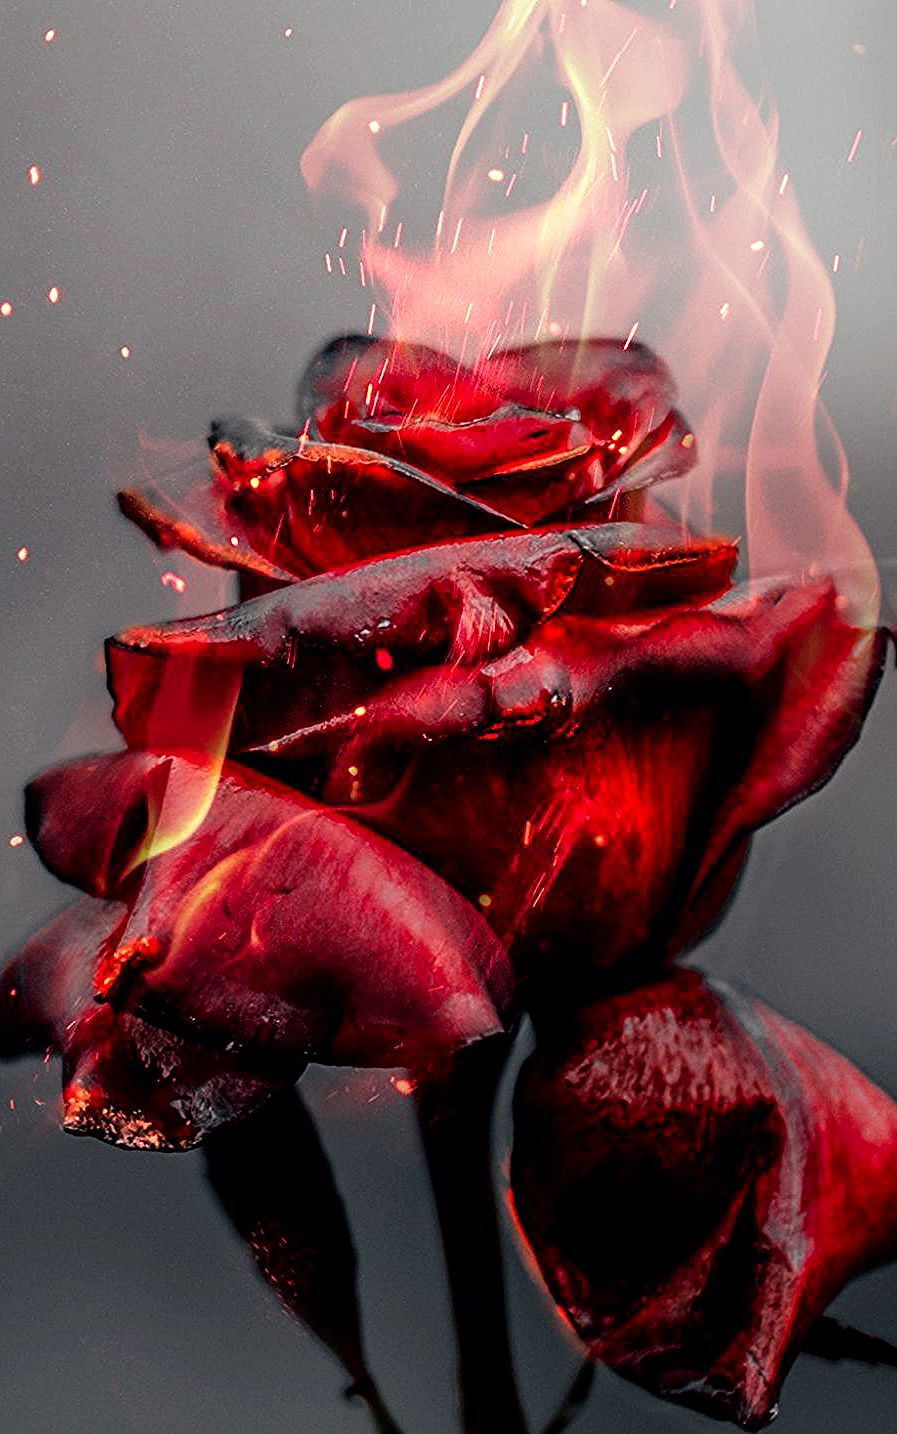 1080x1920 Burning Rose Fire Red Flower Wallpaper In 2020 Red Roses Wallpaper Red Flower Wallpaper Burning Rose